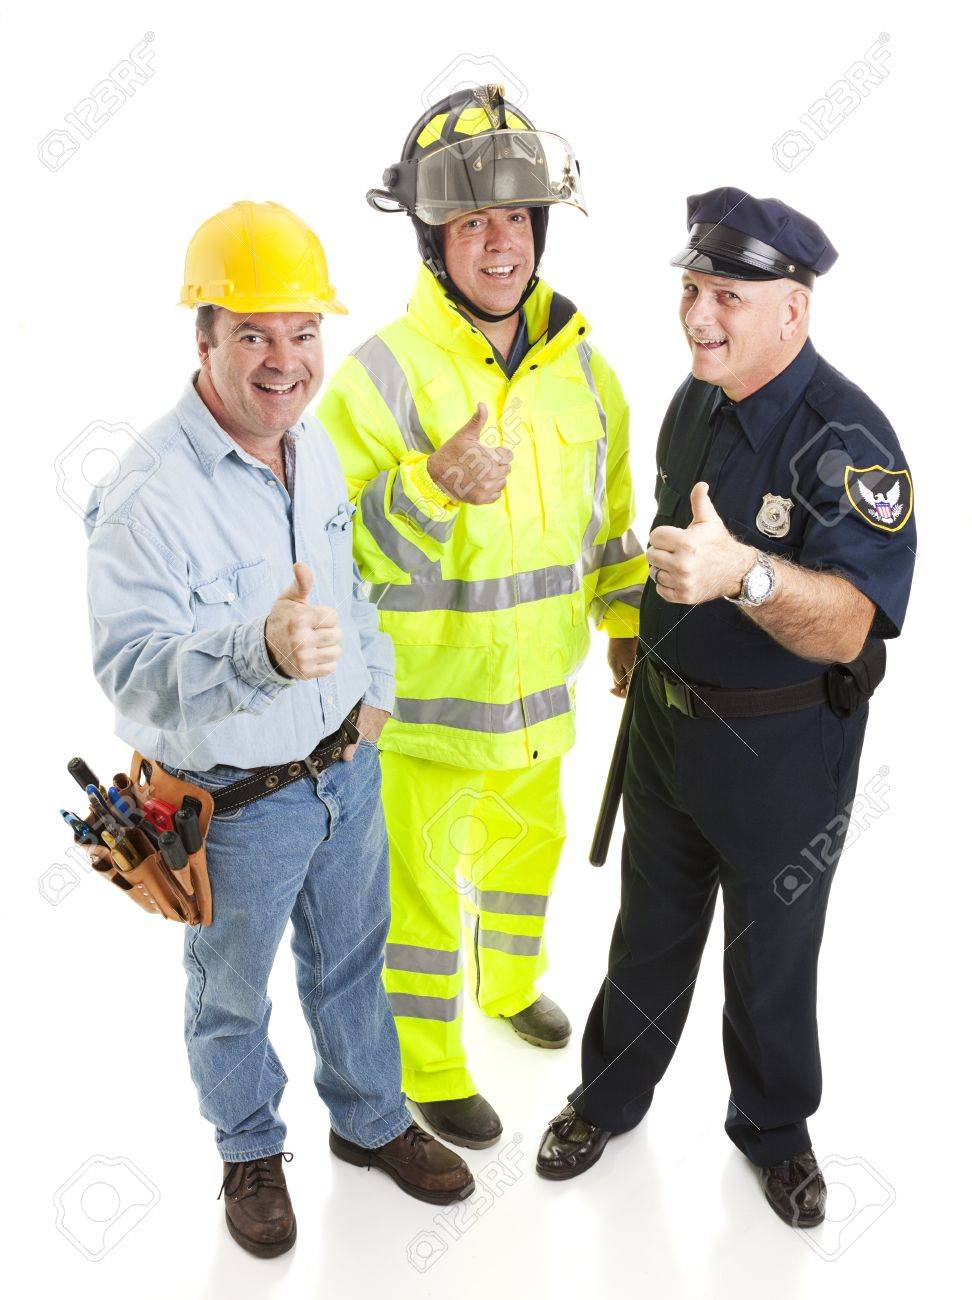 Group of blue collar workers - construction worker, fireman, police officer - giving thumbsup sign.  Full body isolated. Stock Photo - 9418921